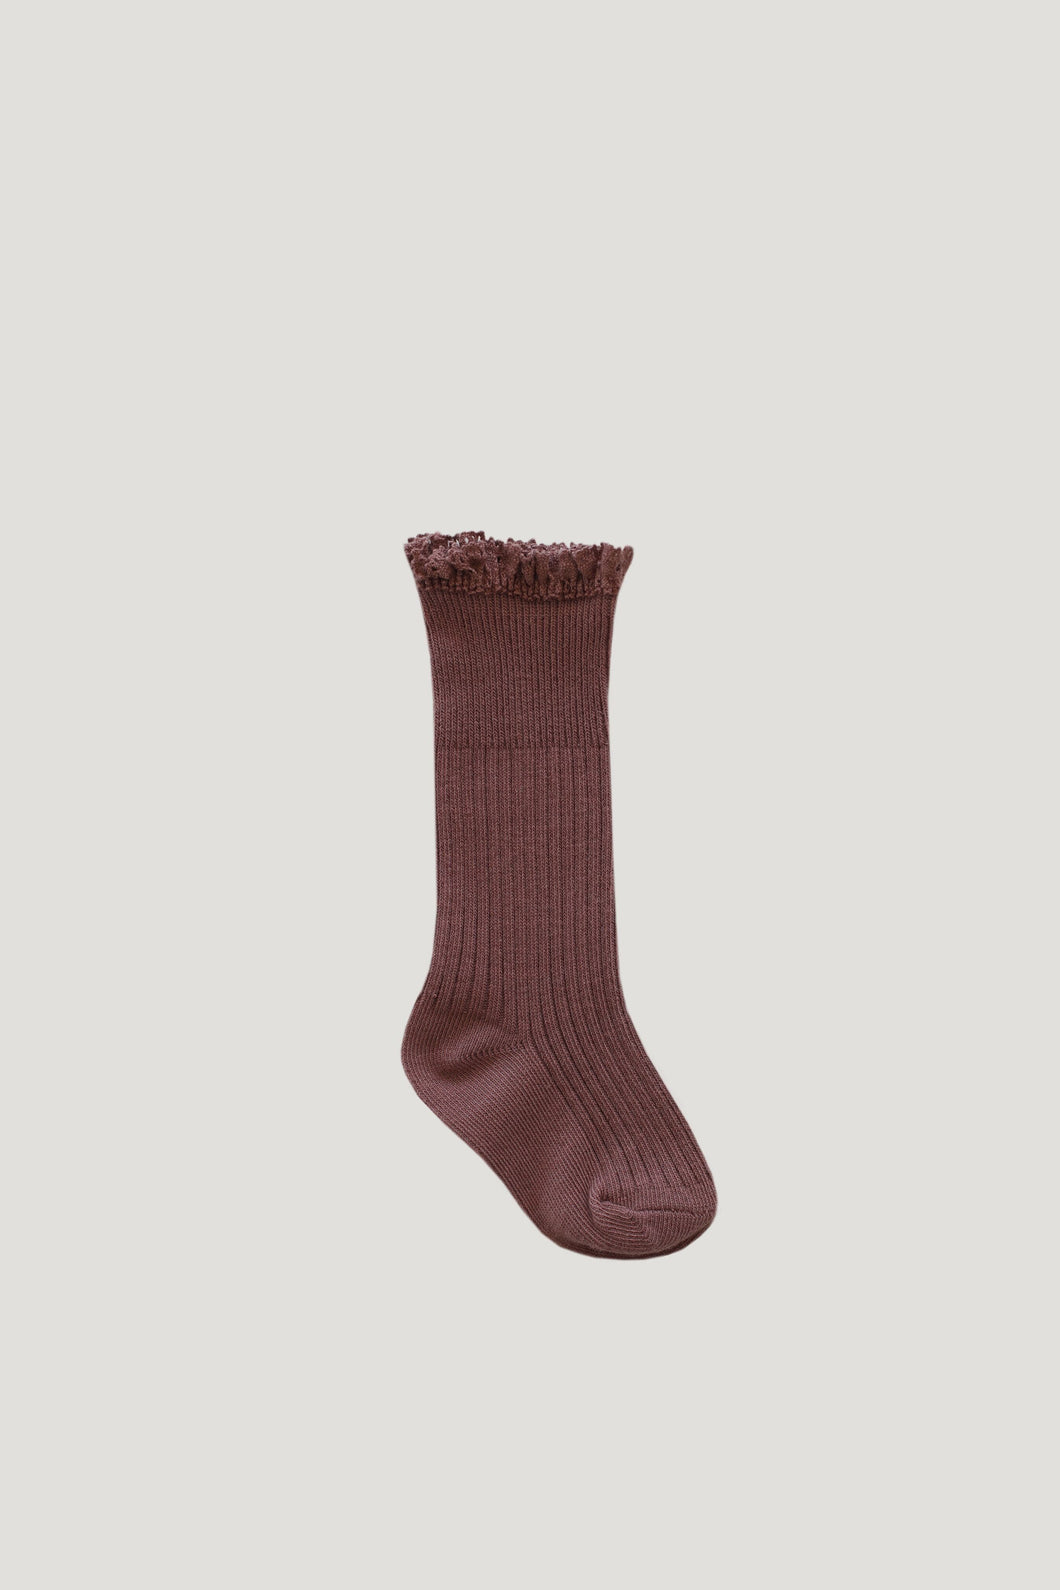 Frill Socks in Antique Rose - WildLittleFawns